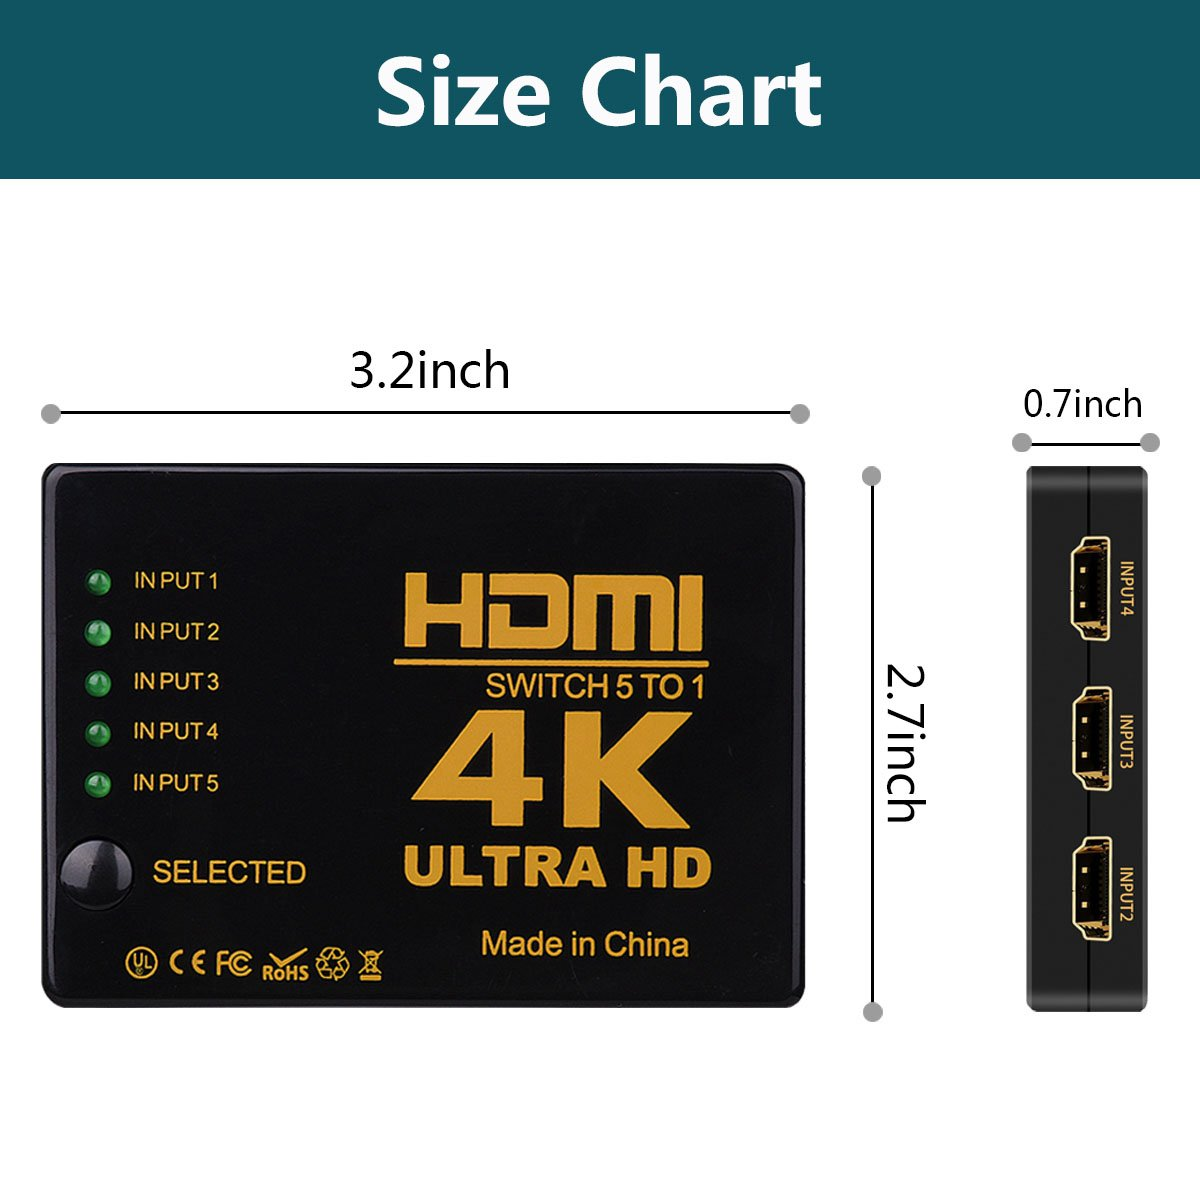 HDMI Switch Splitter,NXLFH Intelligent 5-Port HDMI Switcher, Supports 4K, Full HD1080p, 3D with IR Remote 1080P HD Audio for Nintendo Switch, Xbox One, Roku 3, Apple TV HD TV XBox PS3 PS4 5 in 1 out by NXLFH (Image #6)